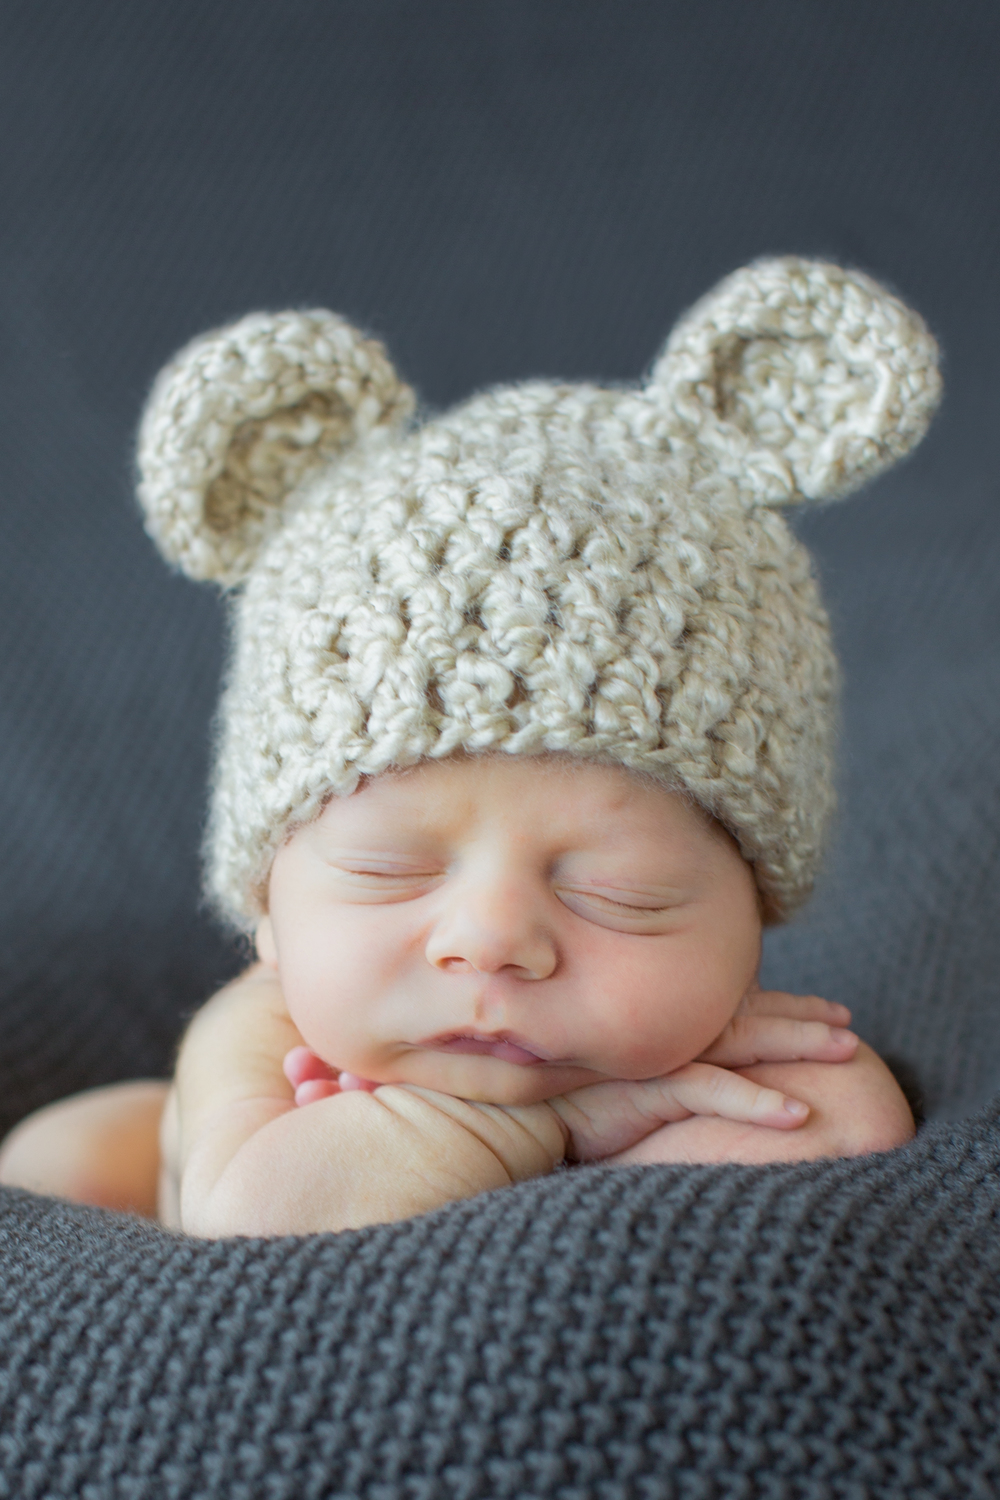 newborn teddy bear.jpg